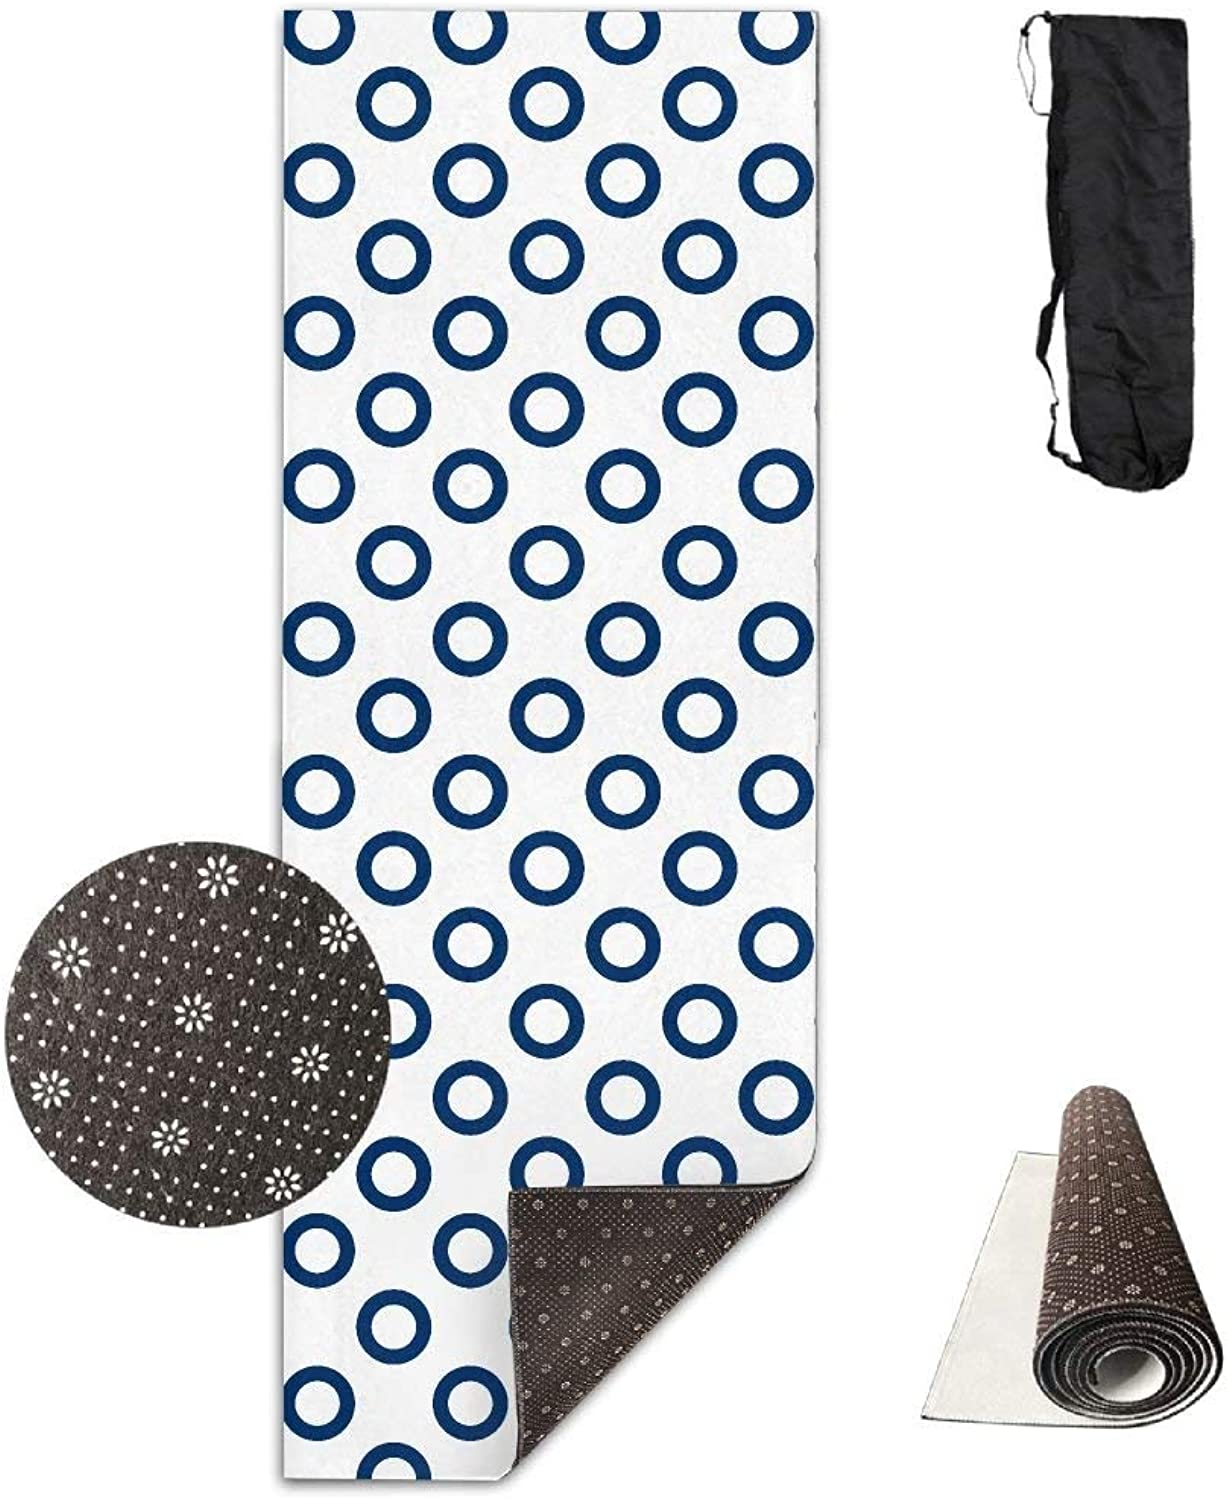 Navy Dot Pattern Yoga Mat Towel for Bikram Hot Yoga, Yoga and Pilates, Paddle Board Yoga, Sports, Exercise, Fitness Towel